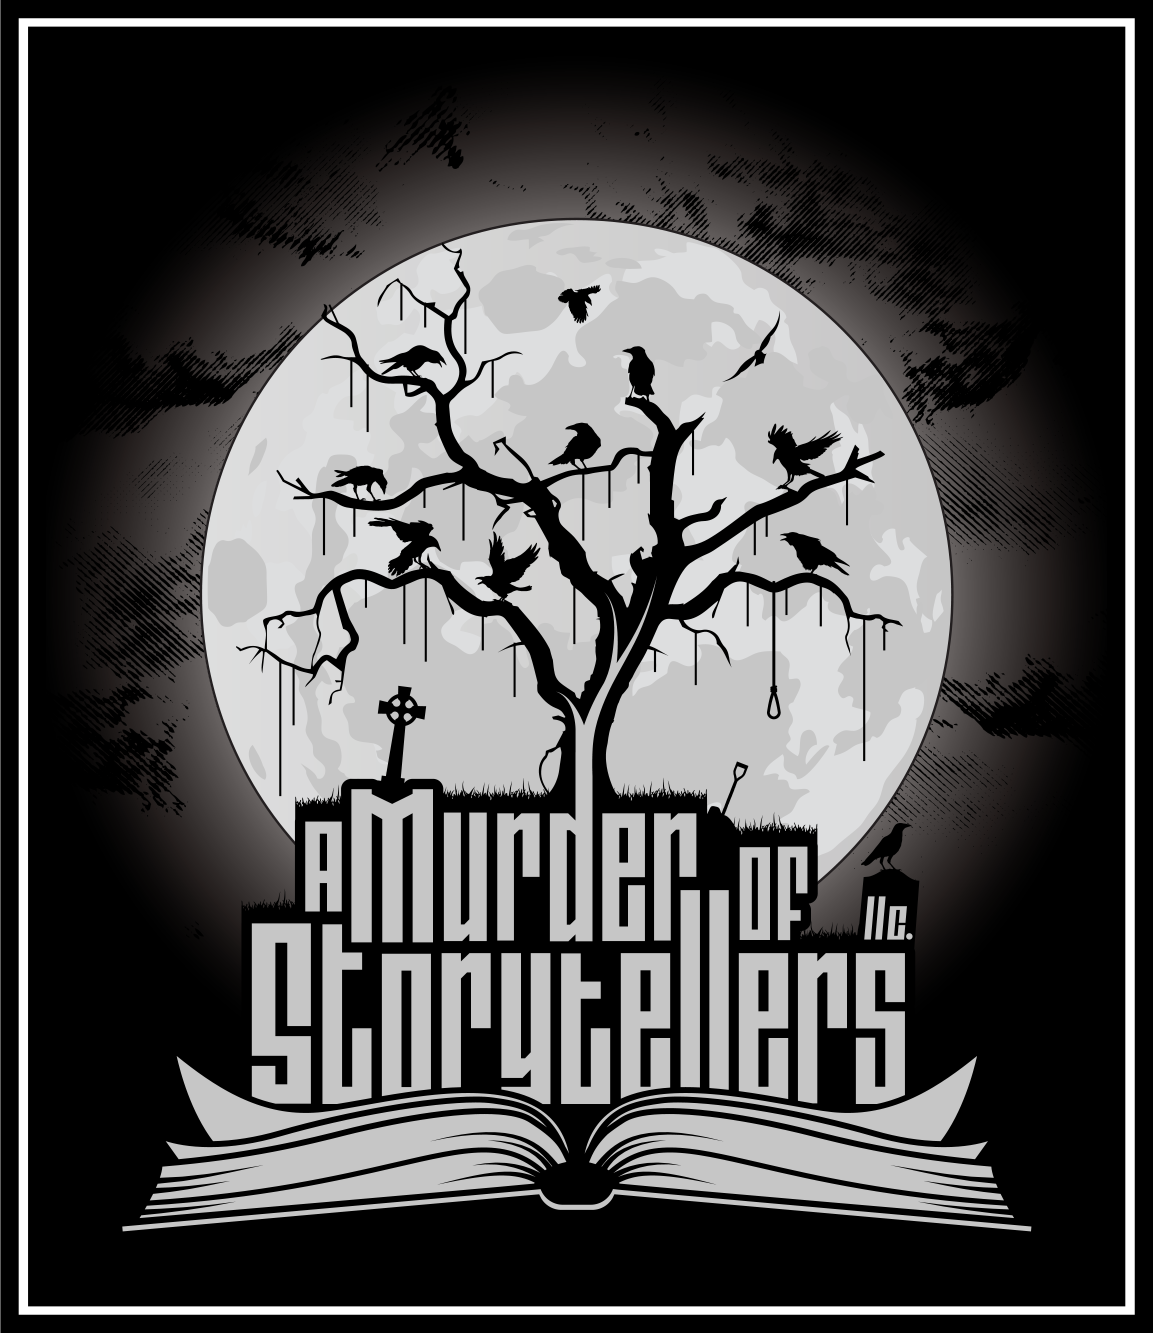 A Murder of Storytellers